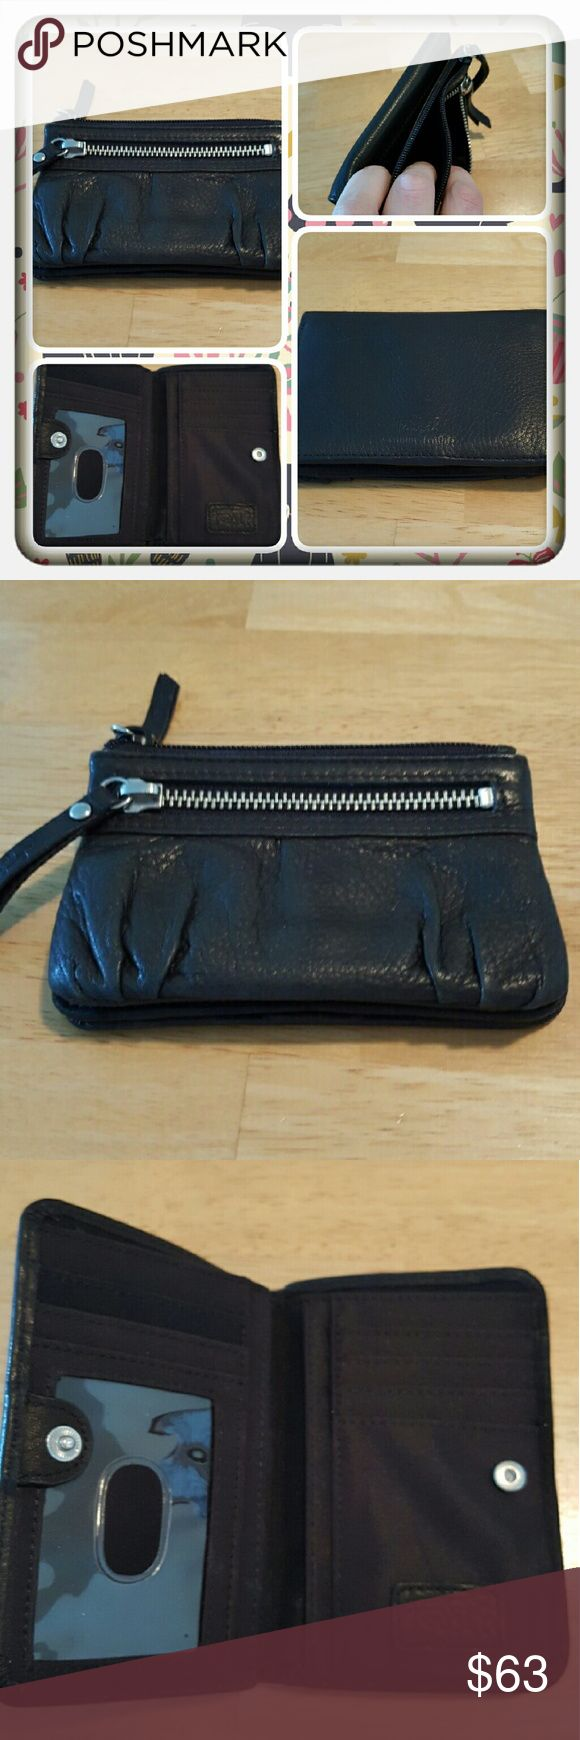 EUC Genuine Leather Fossil Wallet  Genuine Leather Fossil Wallet In Black. This Is A Cute Wallet With So Many Pockets Very Compact So It Doesn't Take Up Alot Of Room In A Purse It's Along The Lines Of The Style Called Erin Just Smaller. Excellent Condition Purchased From Another Seller But I Never Used I Have To Many Wallets  PAYPAL  TRADES  LOWBALLING  Fossil Bags Wallets